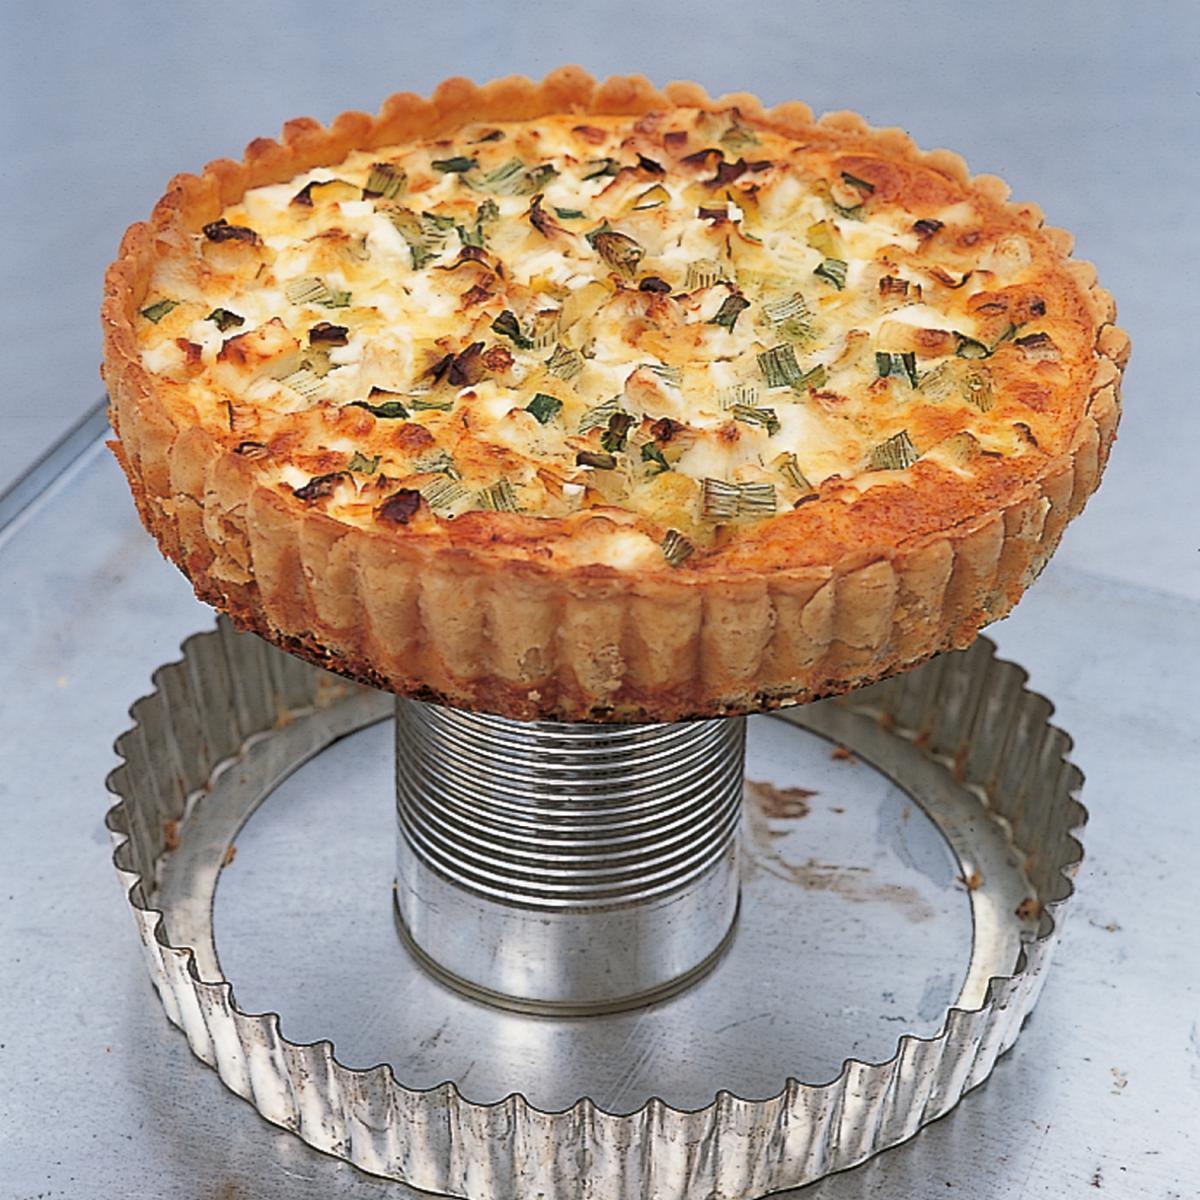 Tomato Tart with Swiss Cheese and Rosemary | Recipes ...